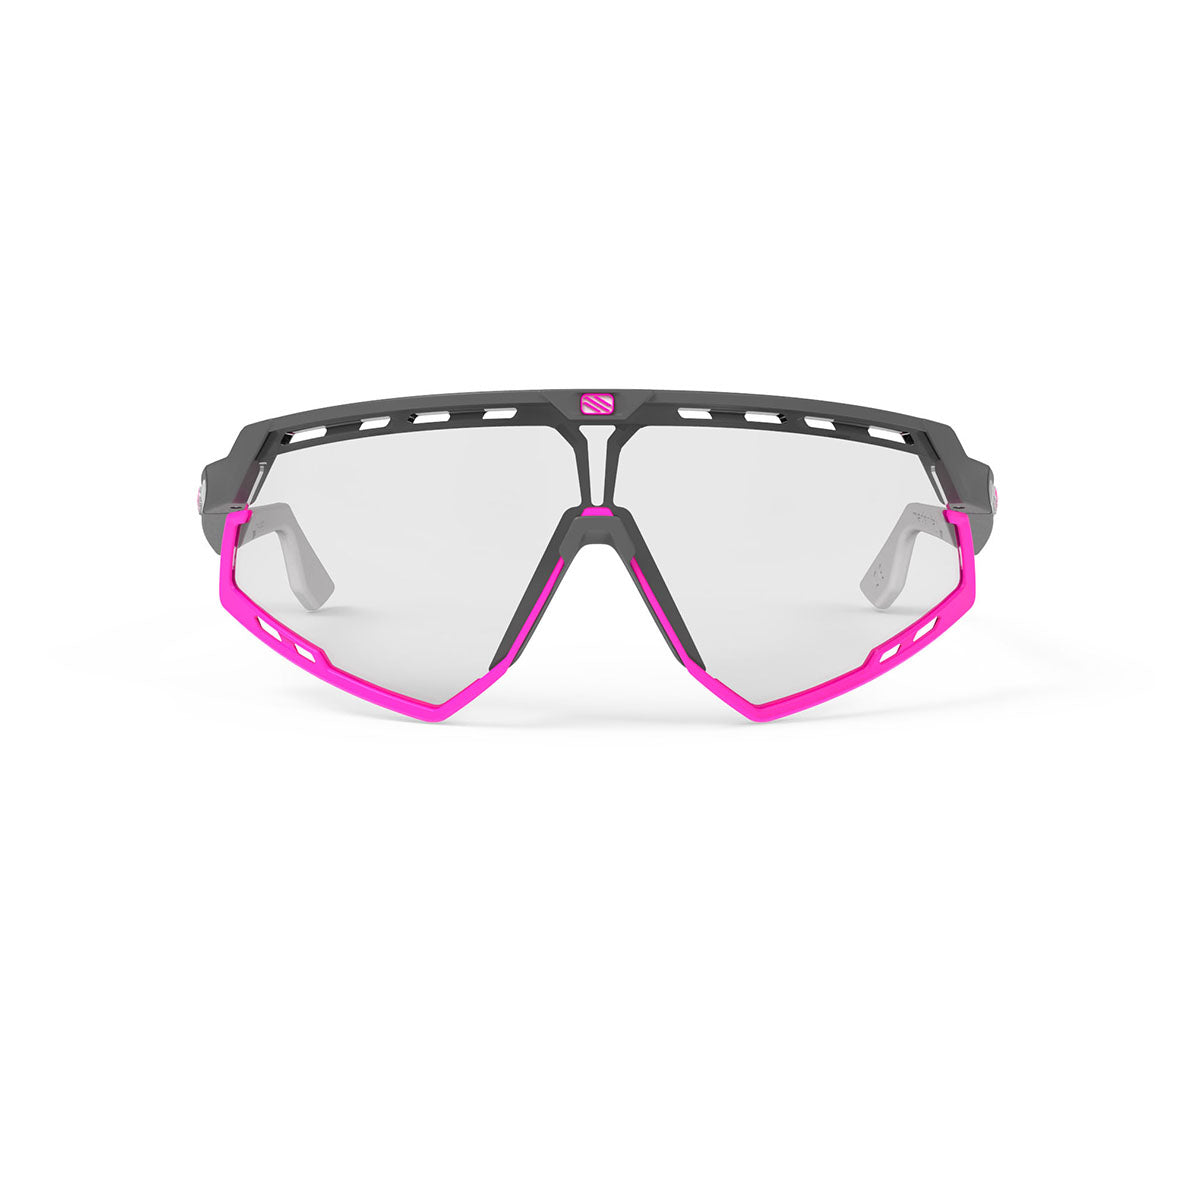 Rudy Project - Defender - frame color: Pyombo Matte - lens color: ImpactX-2 Photochromic Clear to Black - Bumper Color: Fuxia - photo angle: Front View Variant Hover Image